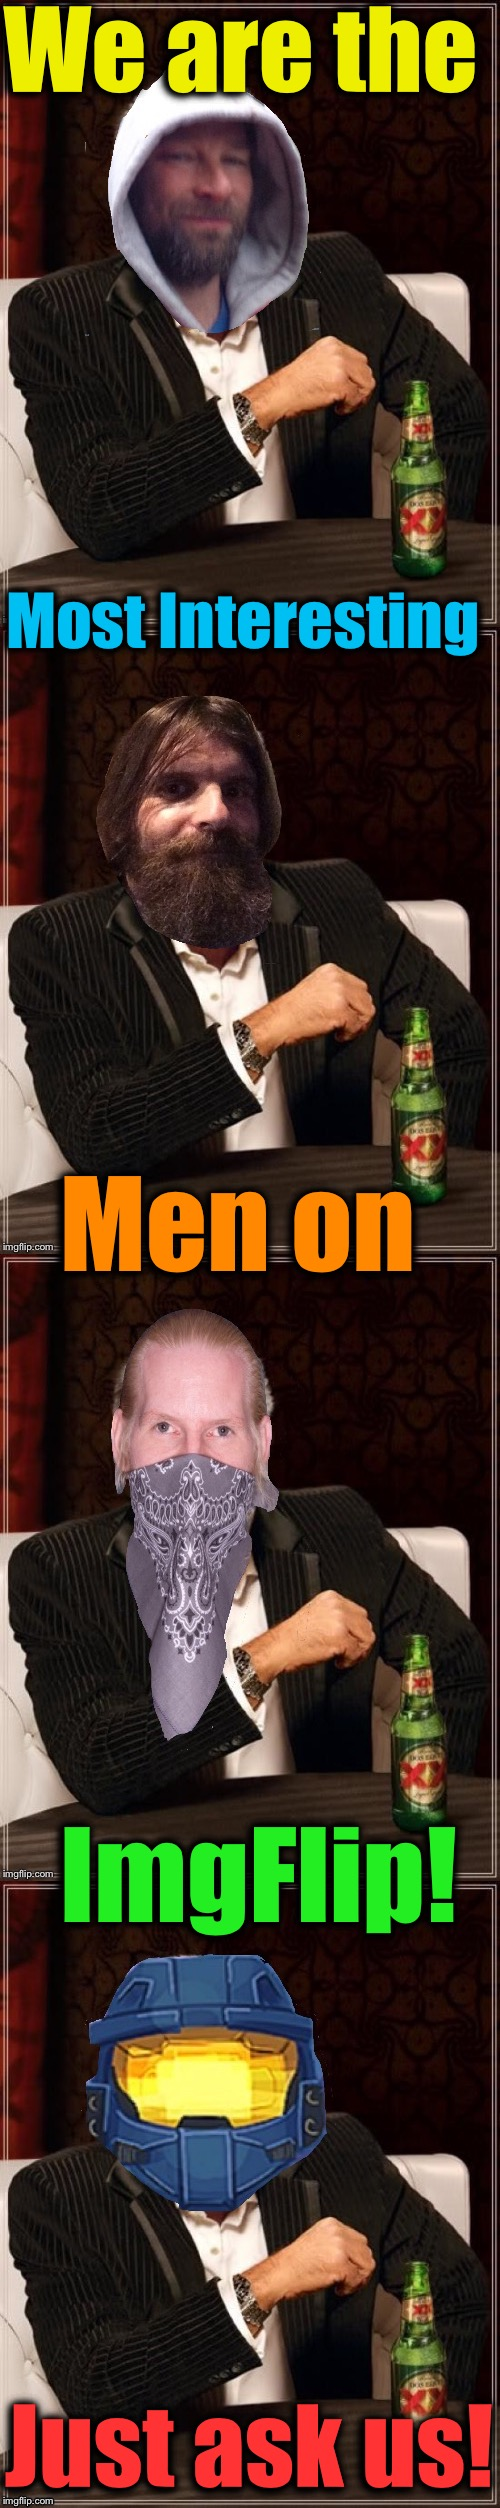 I would like to say, that of course that is an understatement, we're much better than that!  | We are the ImgFlip! Most Interesting Men on Just ask us! | image tagged in the most interesting man in the world,memes,dashhopes,evilmandoevil,octavia_melody,ghostofchurch | made w/ Imgflip meme maker